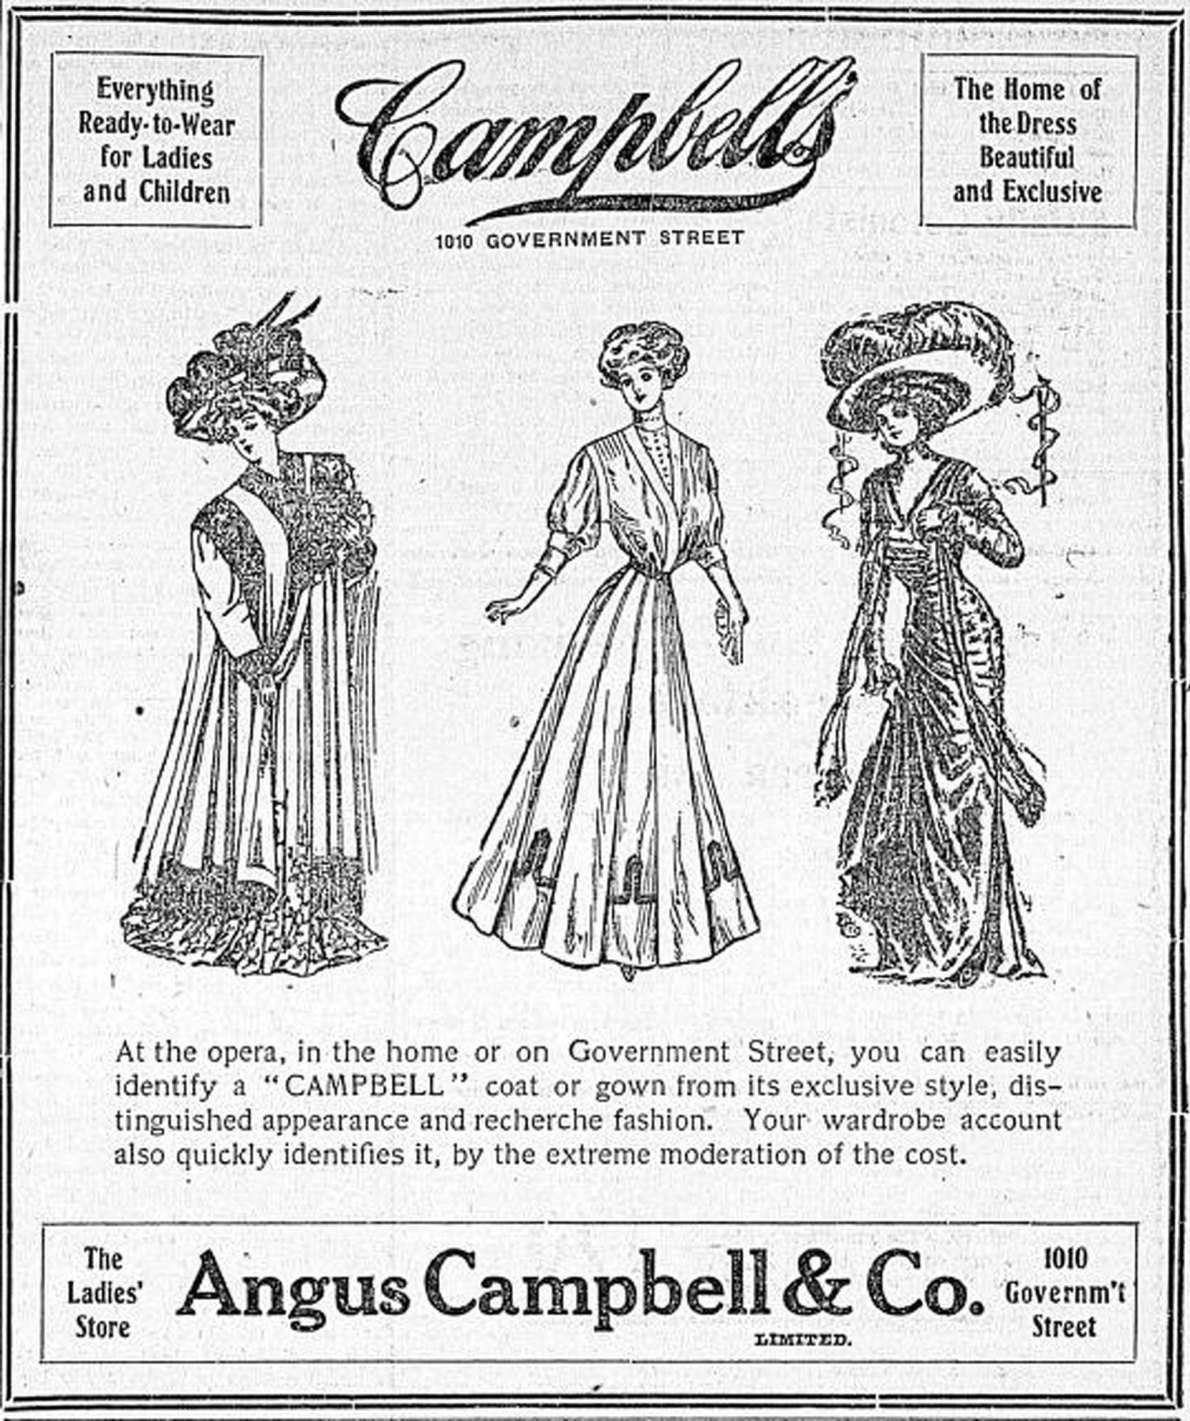 1908 advertisement for Angus Campbell & Co., 1010 Government Street (Victoria Online Sightseeing Tours collection)